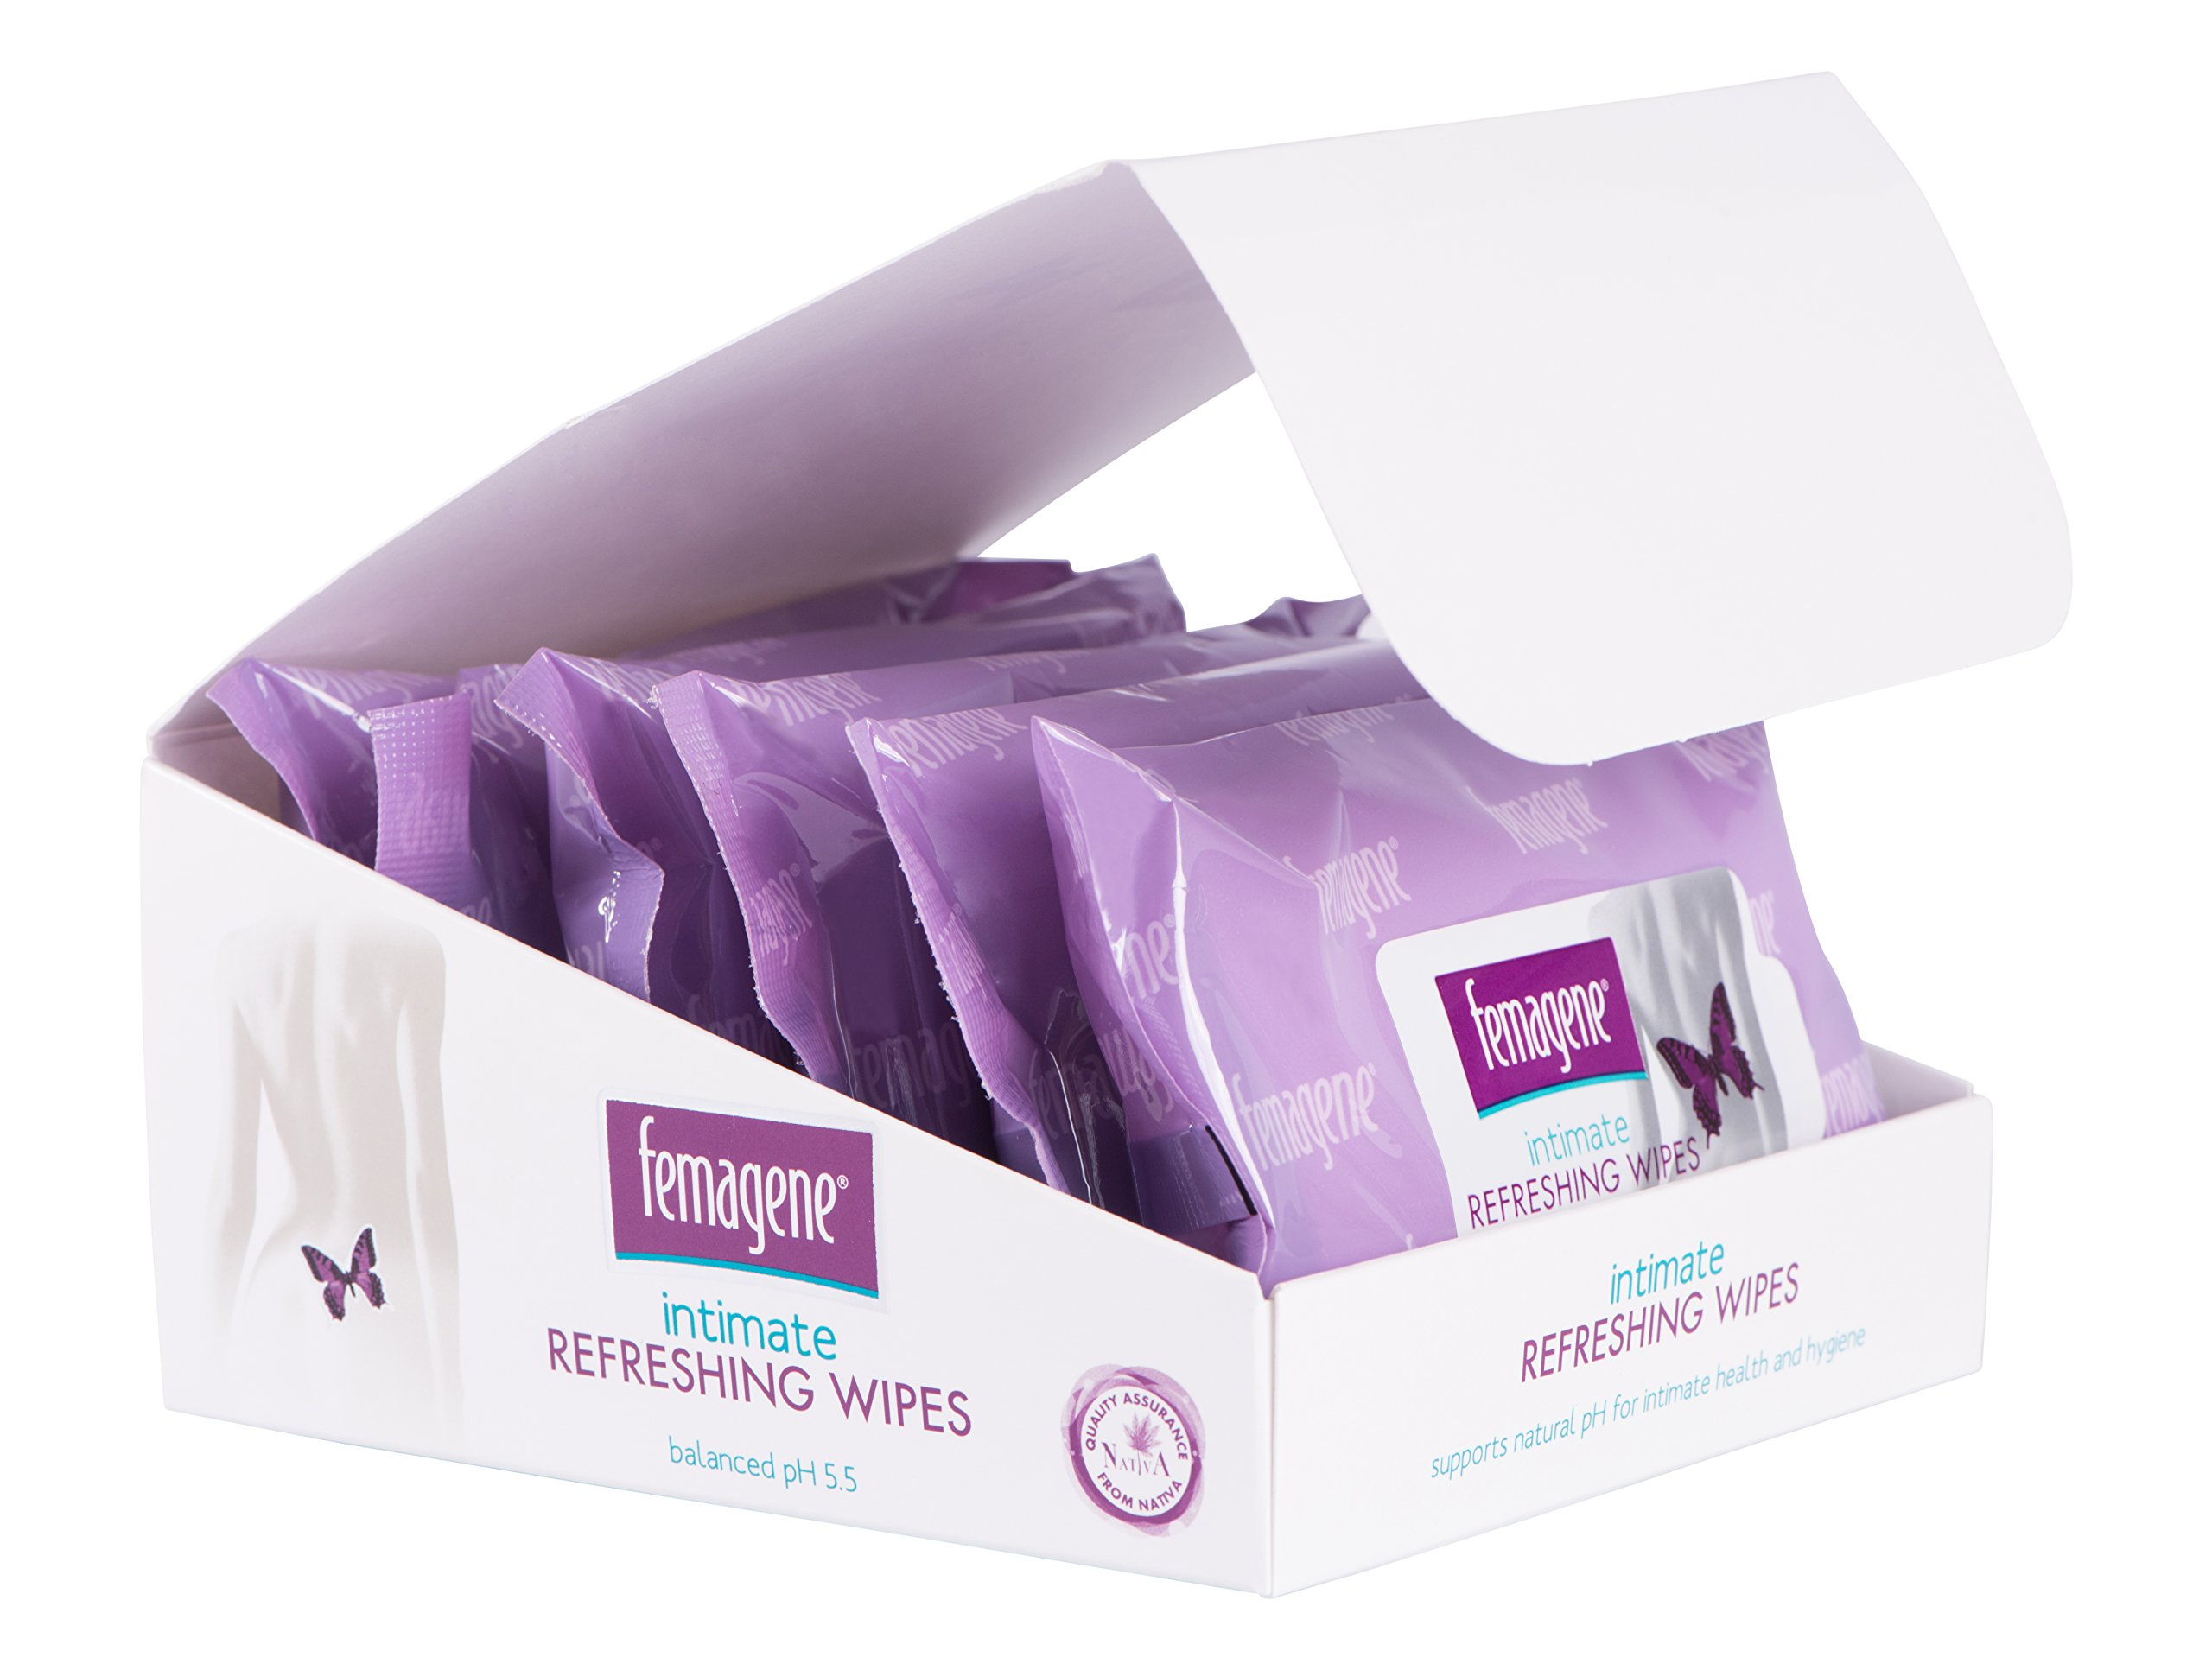 Femagene Intimate REFRESHING FLUSHABLE Wipes| Soothe Vaginal Irritations, Redness & Itchiness, Treat Inflammation, Fungus Infections, Moisturize & Restore pH | Aloe Vera, Calendula, Vitamin E and More